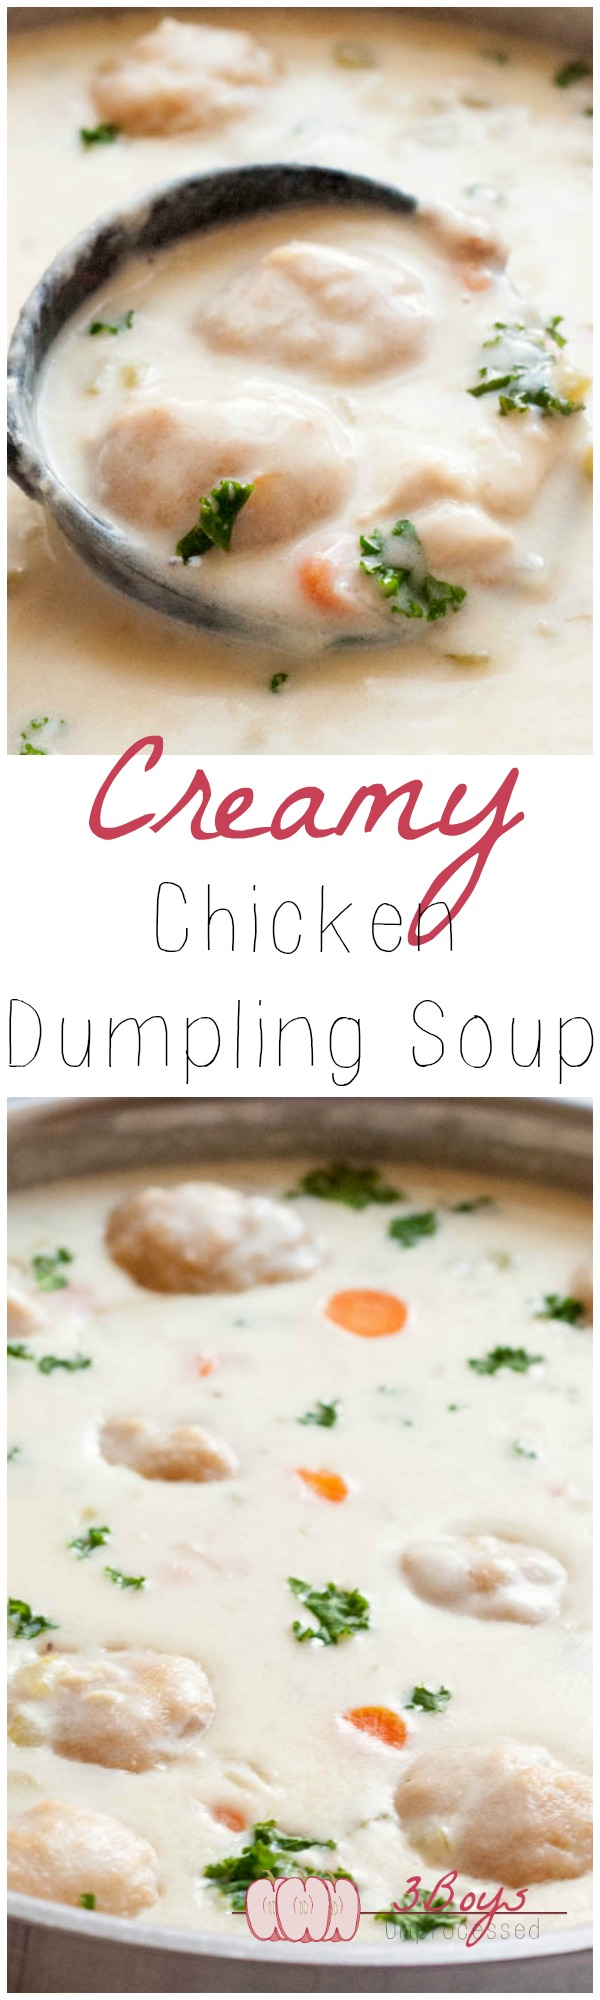 Creamy Chicken and Dumpling Soup – Pretty Little Apron